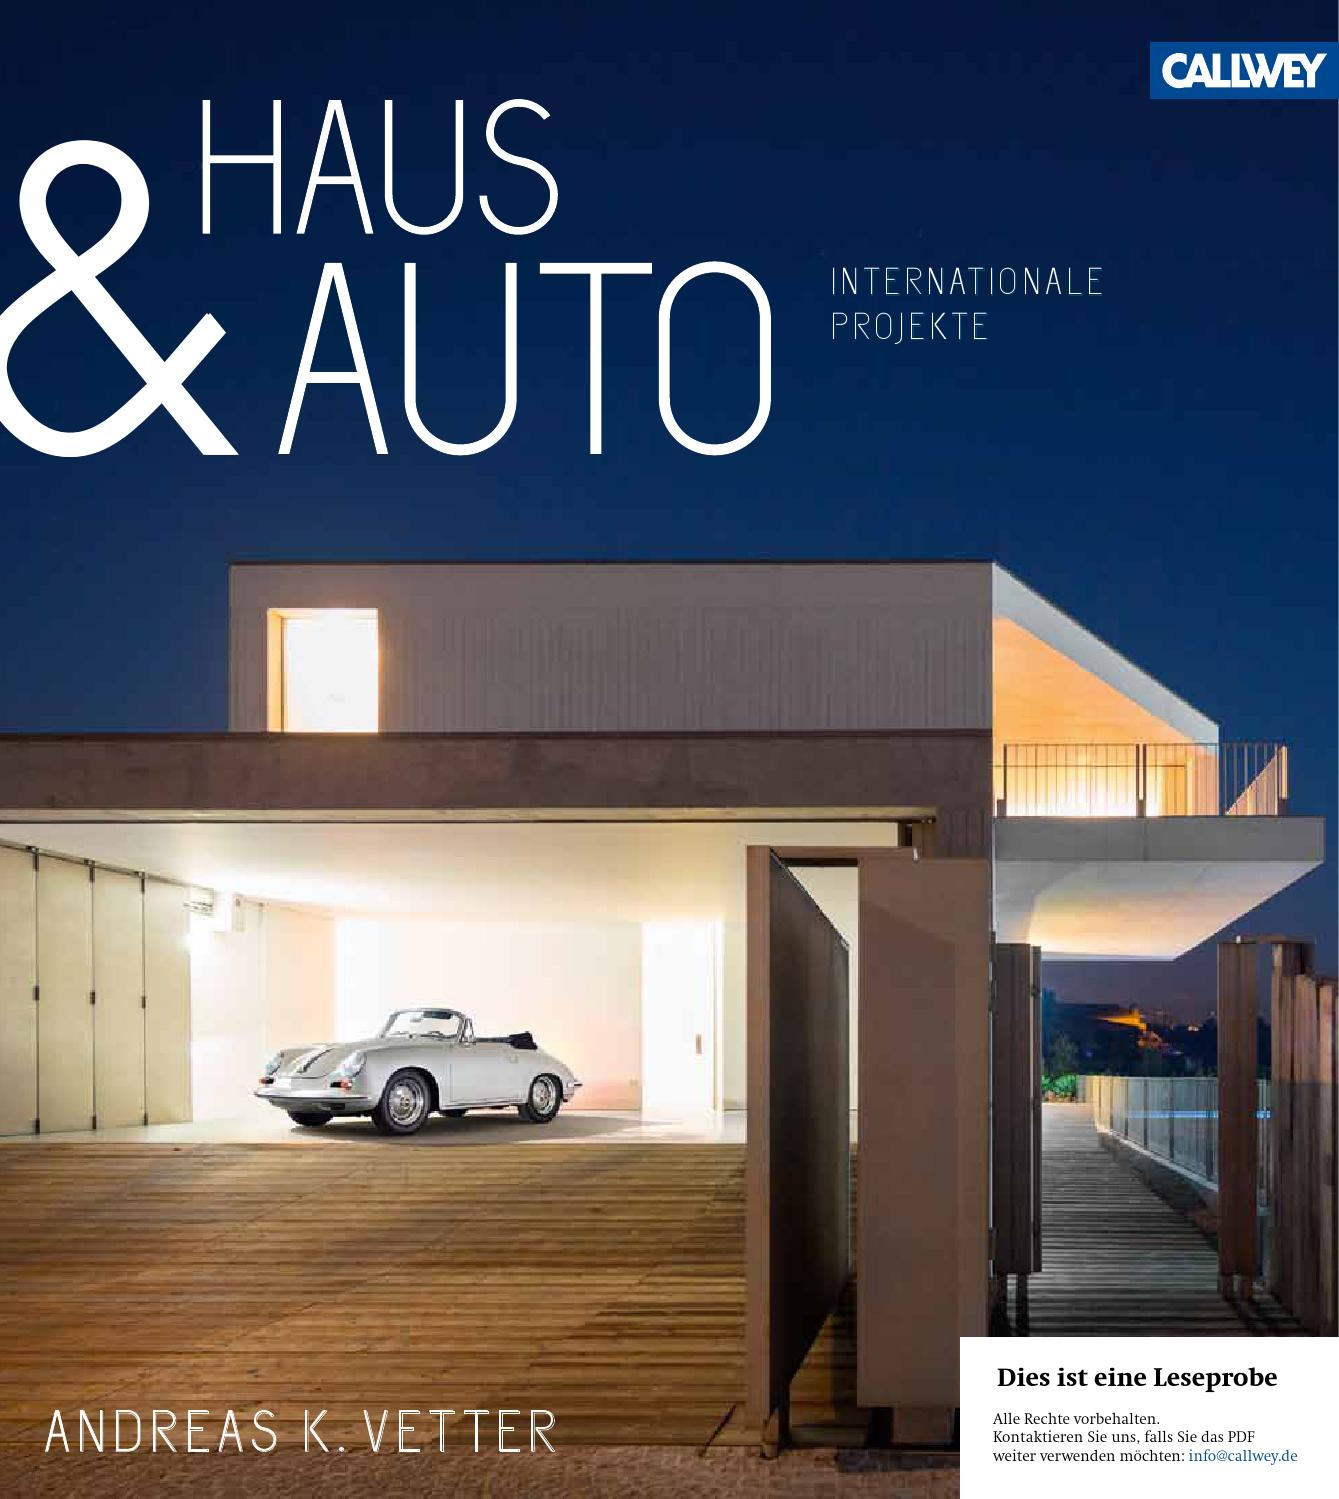 Fassadenverkleidung James Vetter Haus Und Auto Internationale Projekte Callwey Issuu By